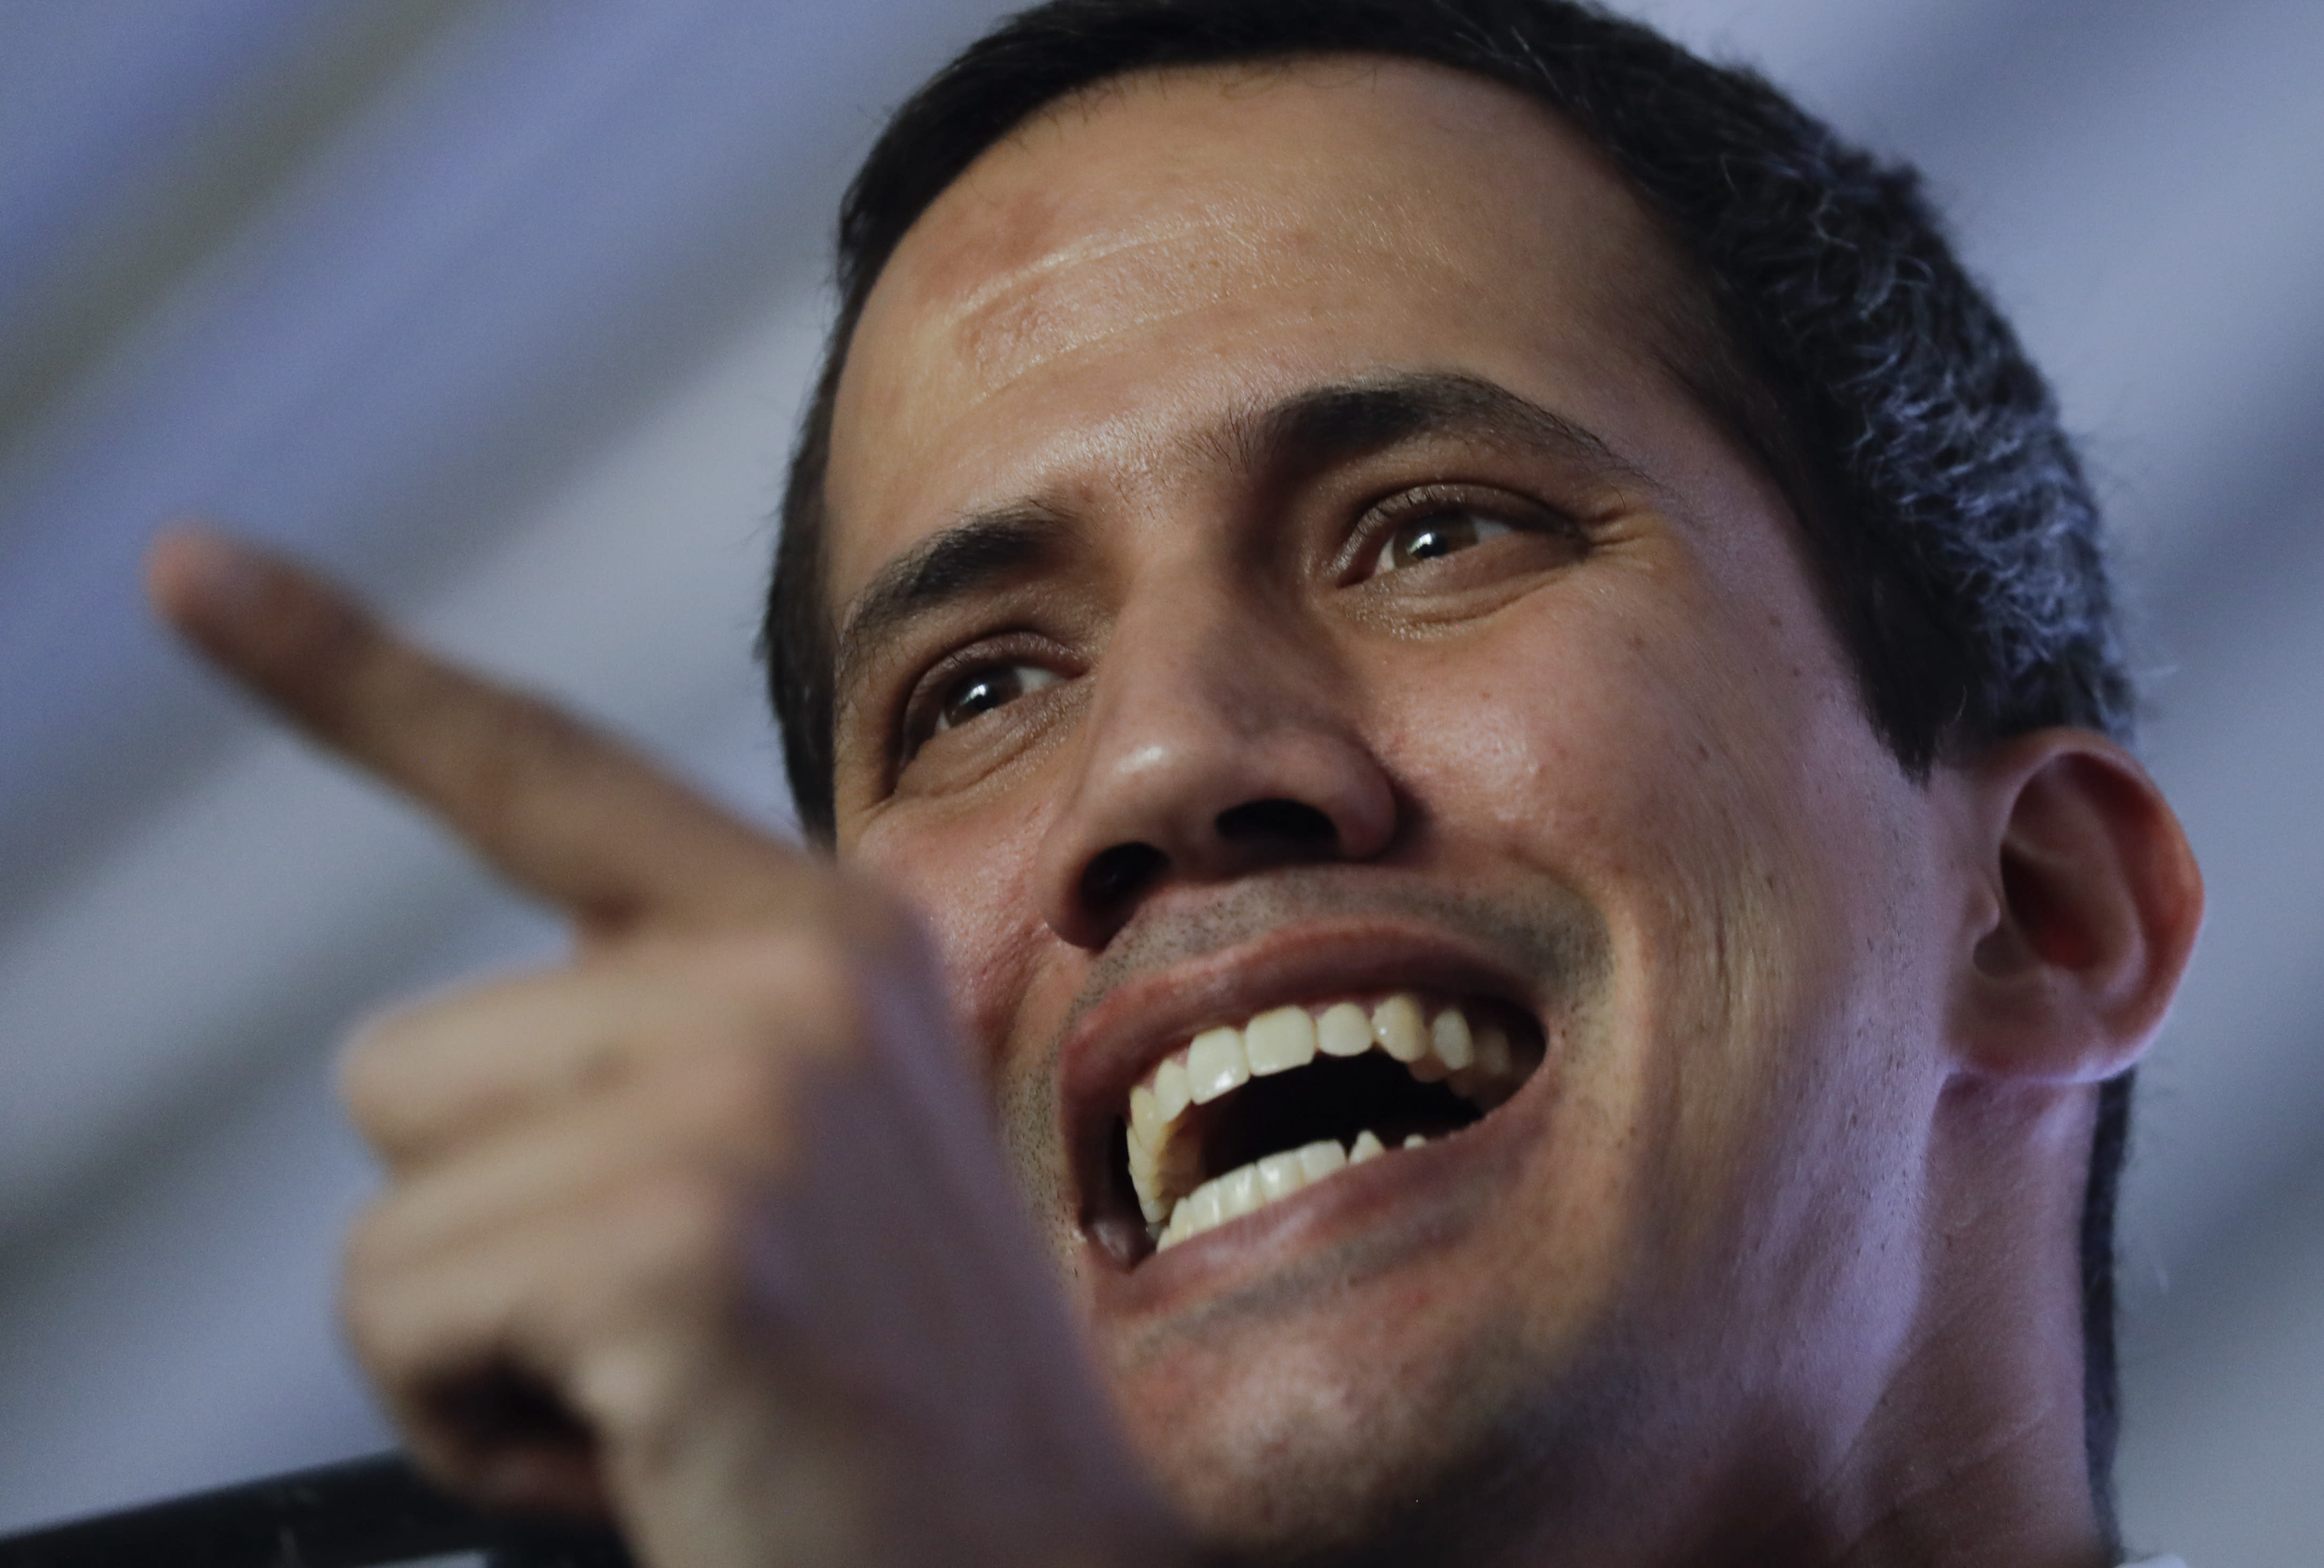 Venezuela's self-proclaimed interim president Juan Guaido talks during a meeting with electricity experts in Caracas, Venezuela, Thursday, March 28, 2019. The Venezuelan government on Thursday said it has barred Guaido from holding public office for 15 years, though the National Assembly leader responded soon afterward that he would continue his campaign to oust President Nicolas Maduro. (AP Photo/Natacha Pisarenko)